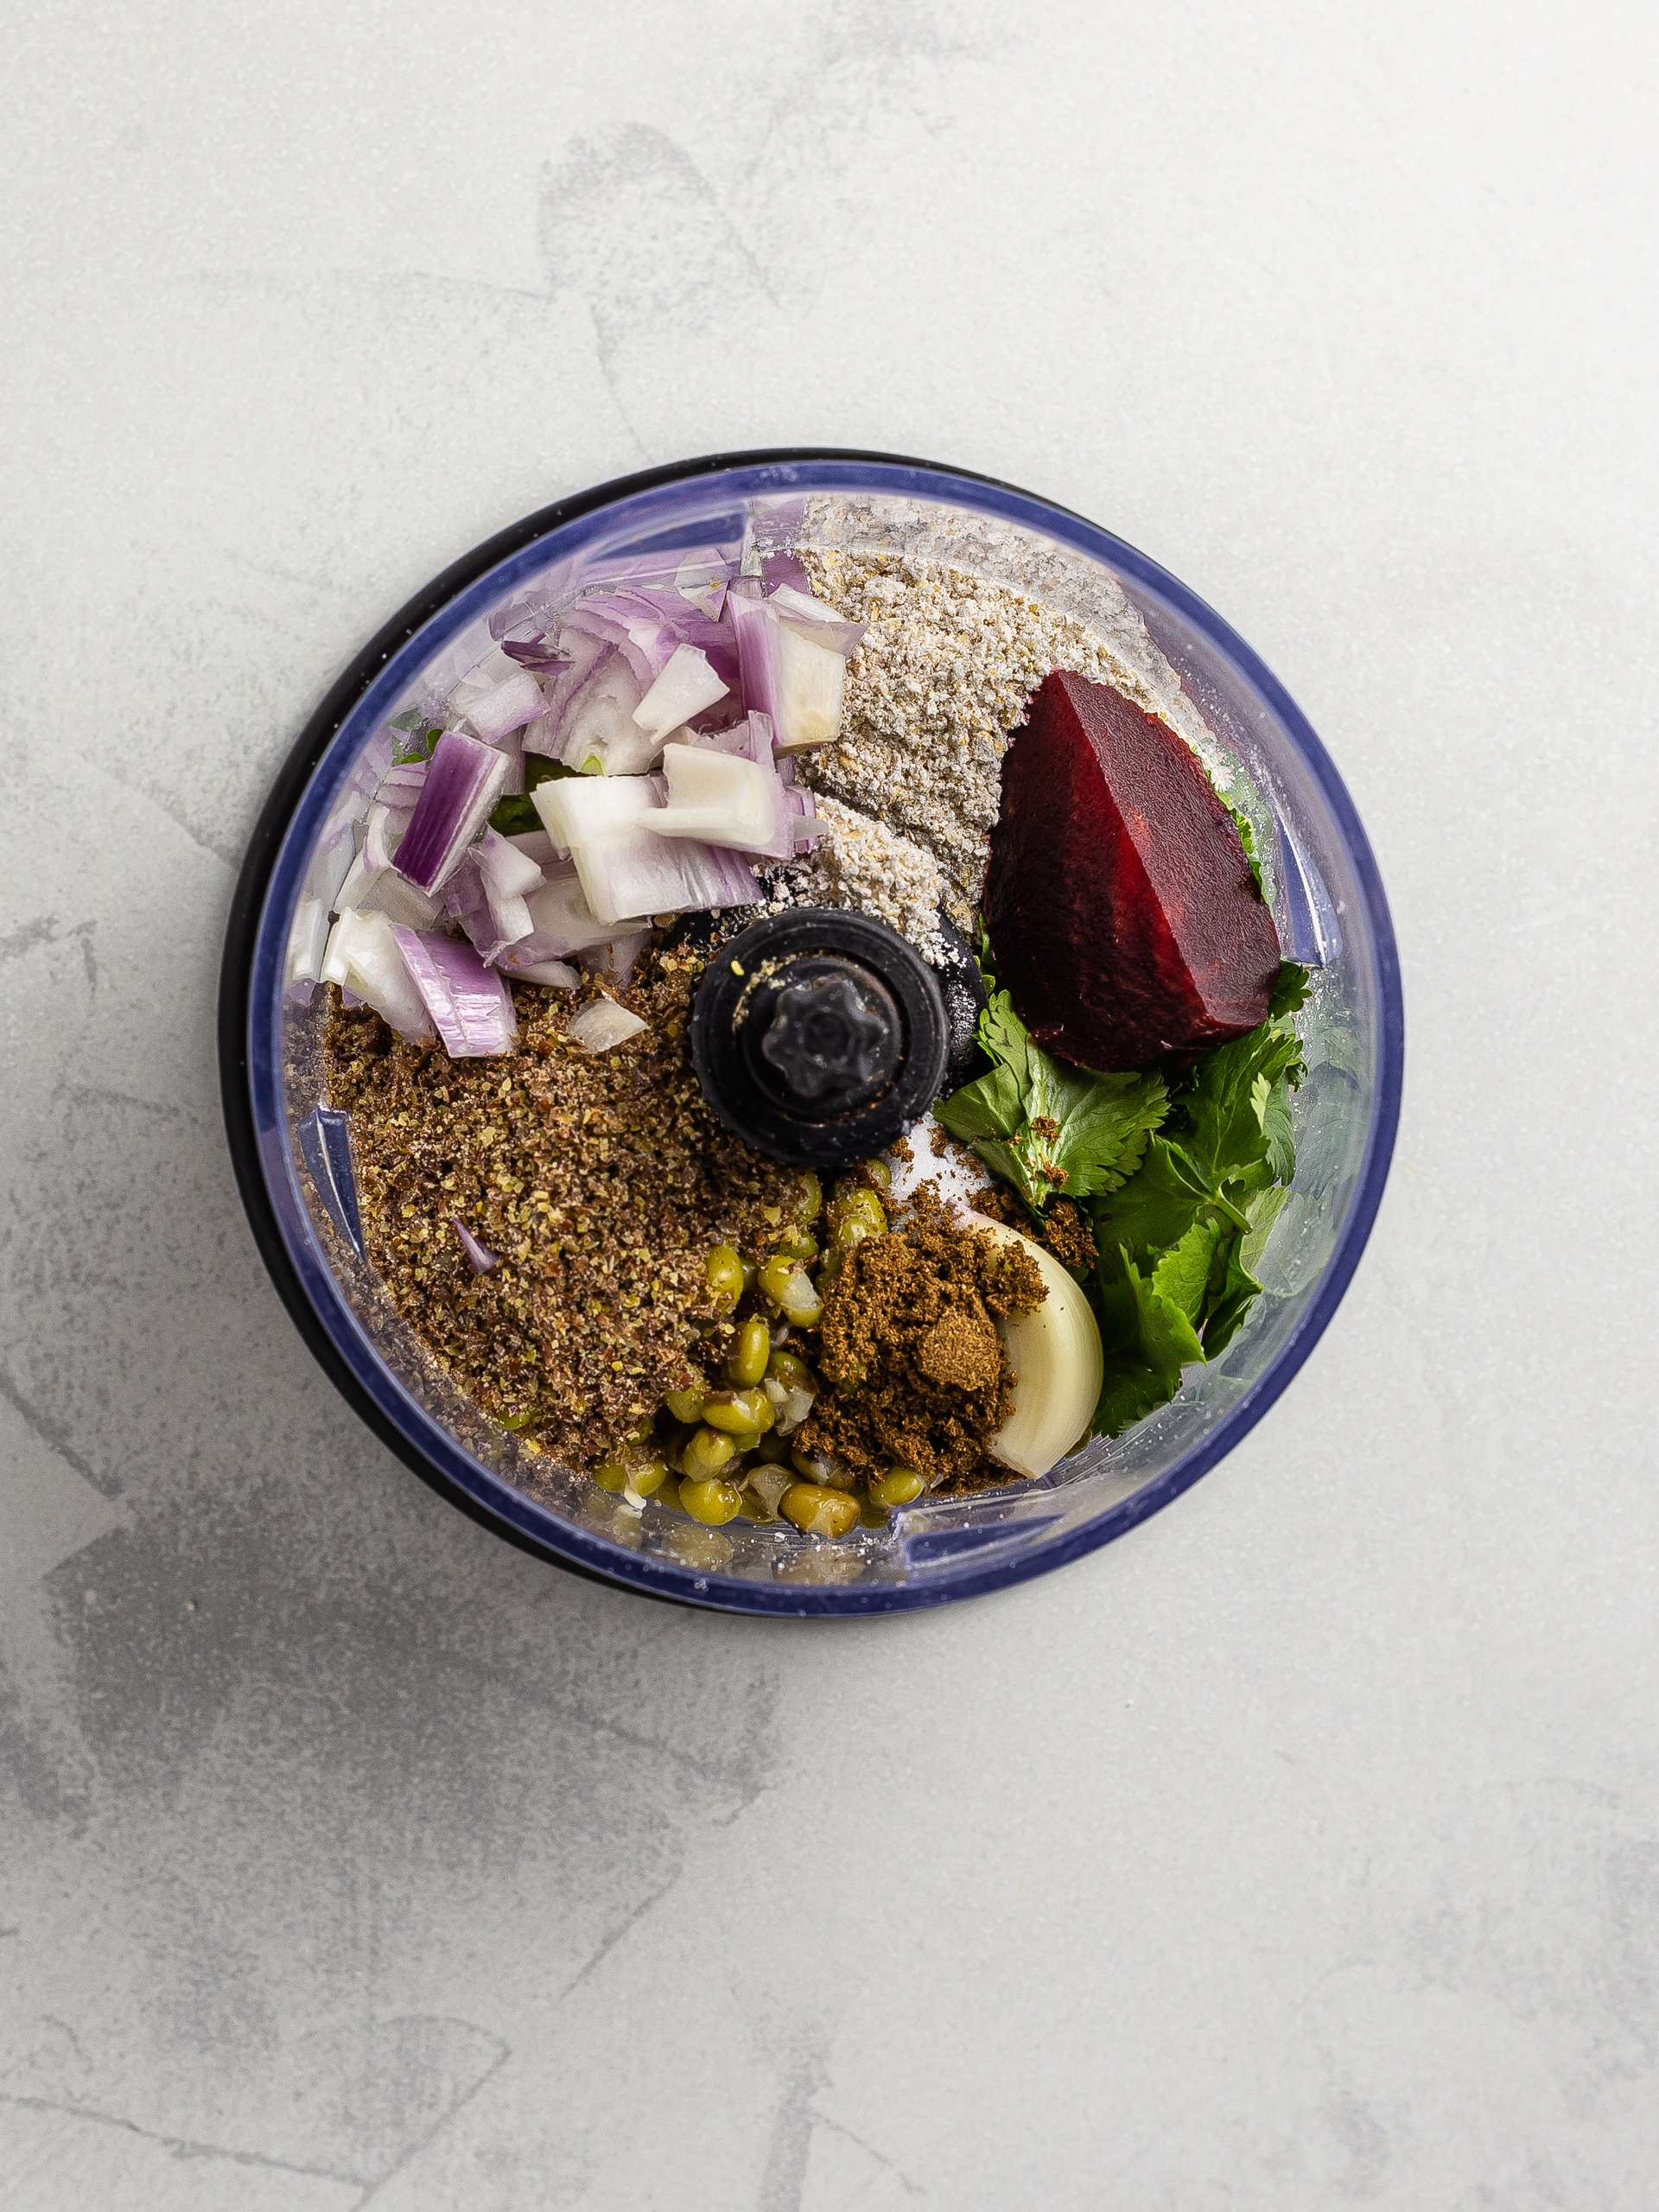 mung bean burger ingredients in a blender